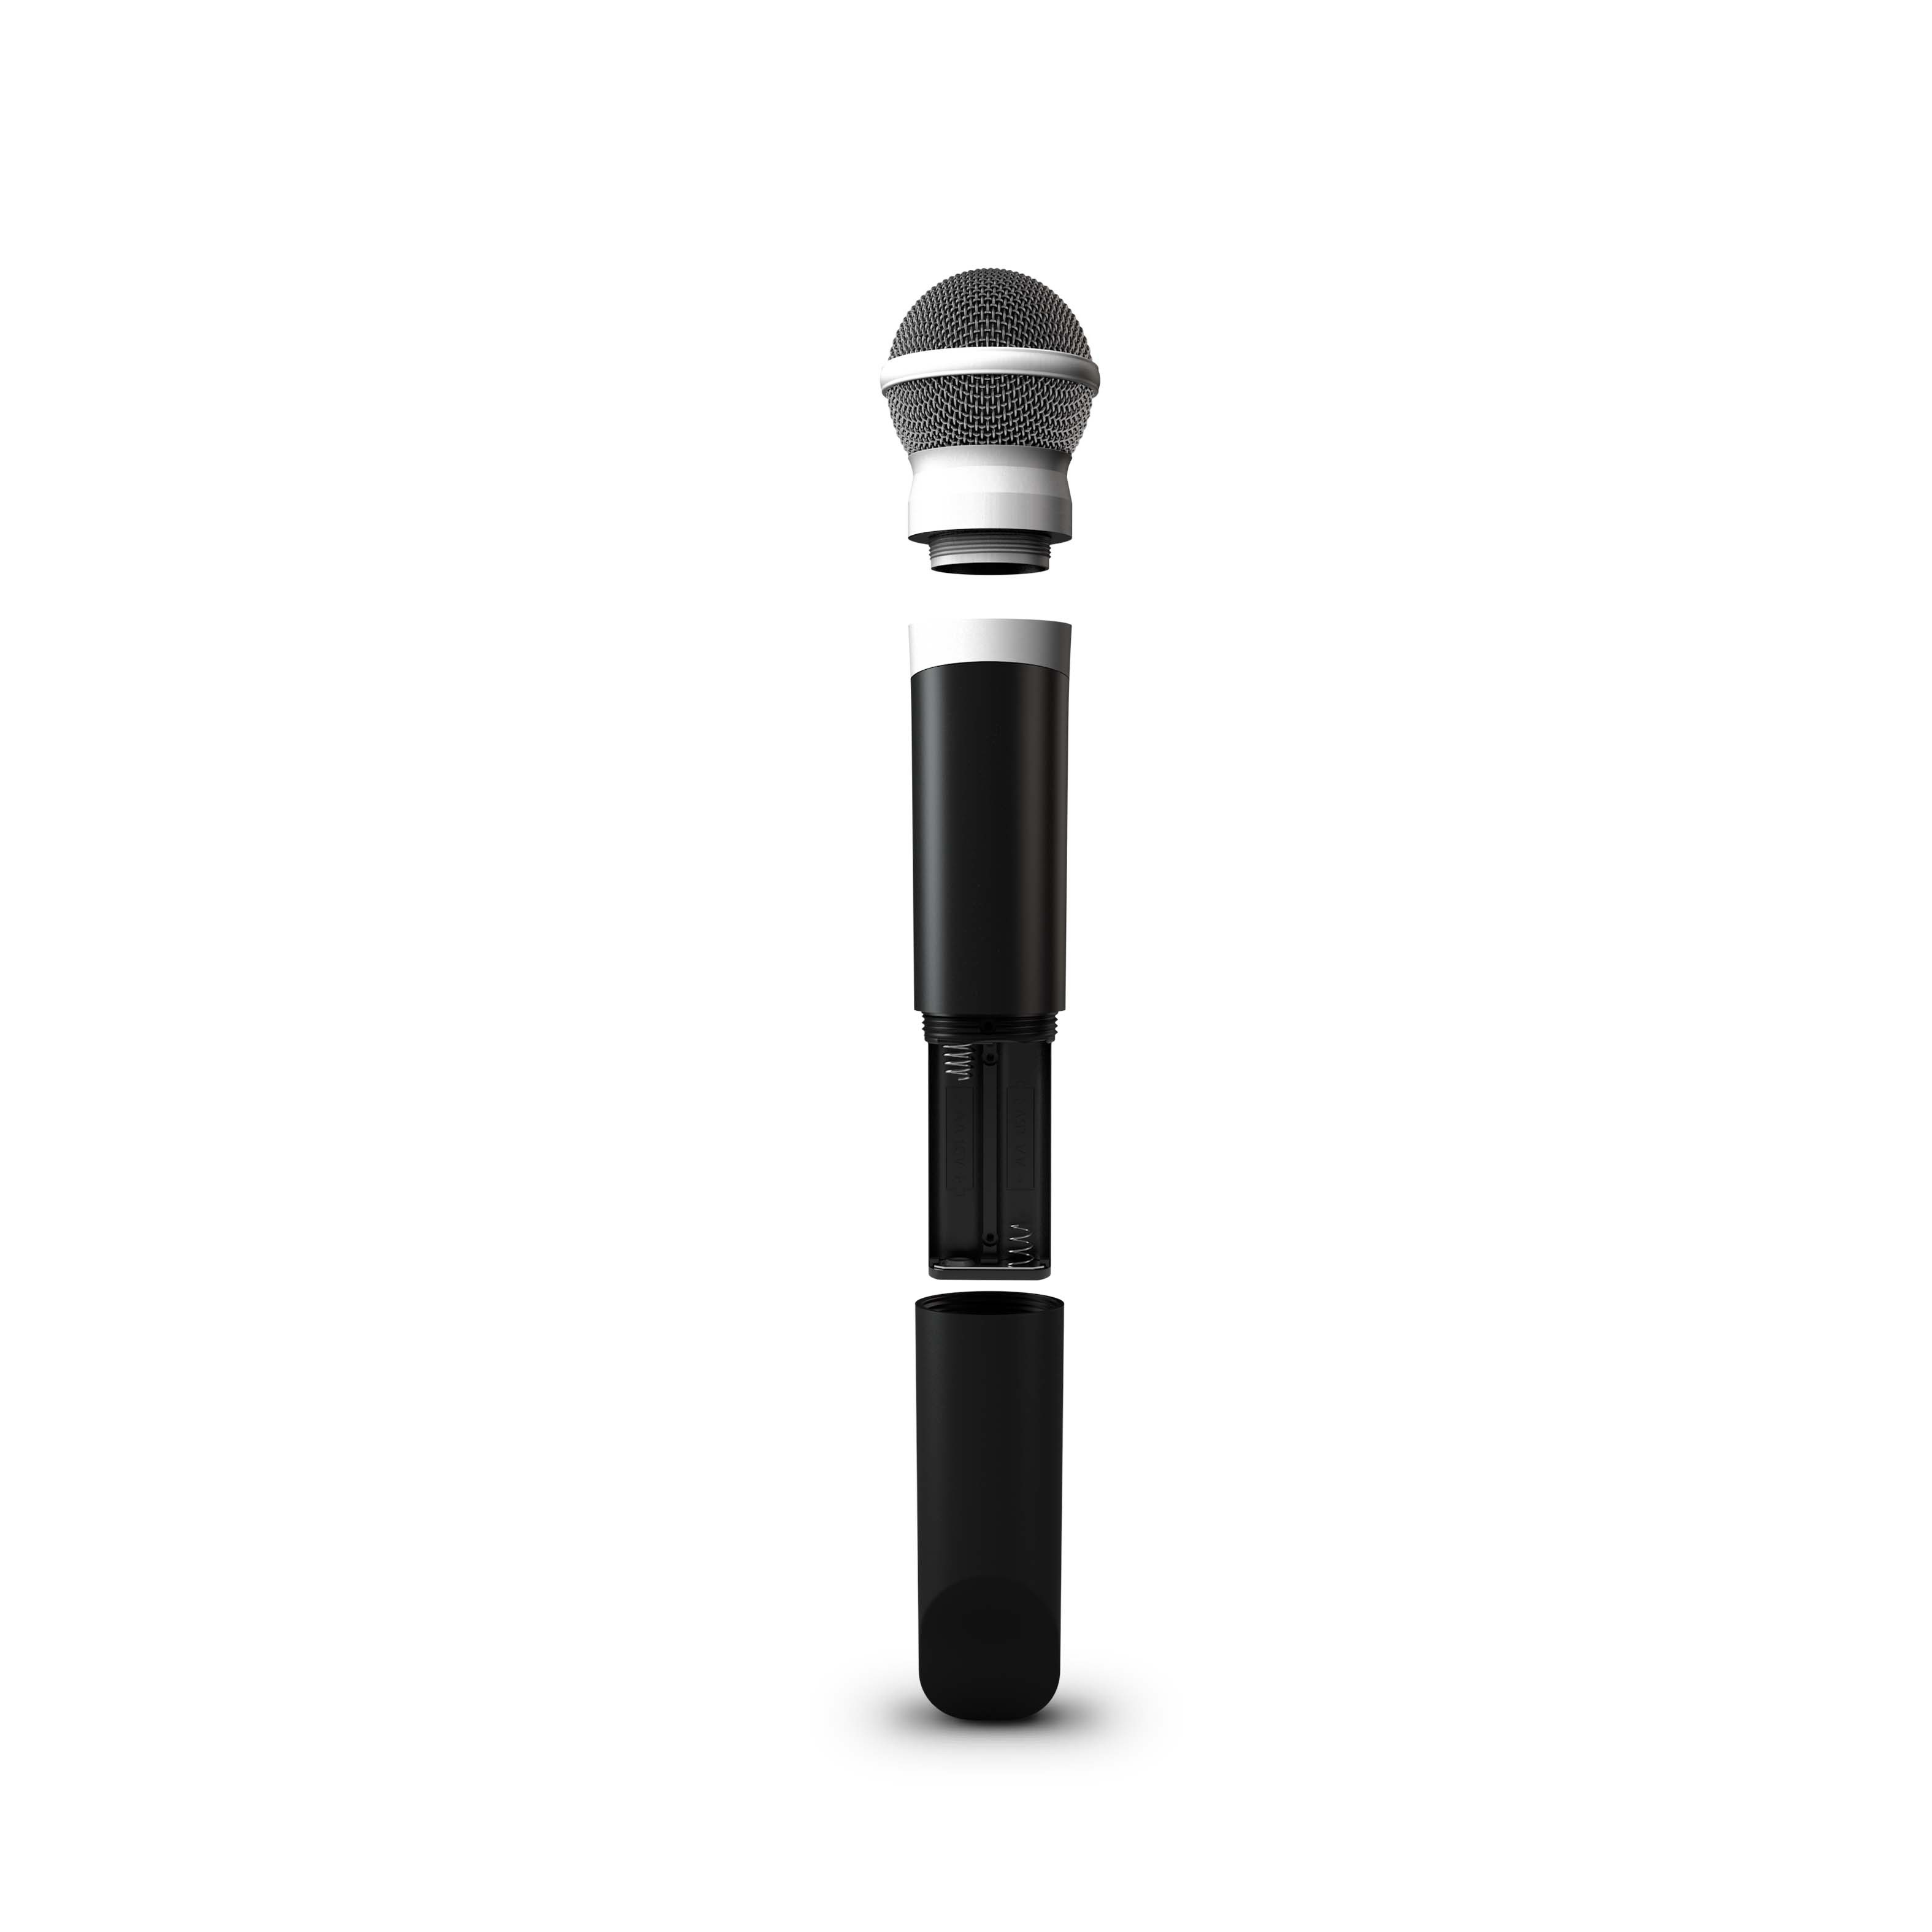 U304.7 MD Dynamic handheld microphone